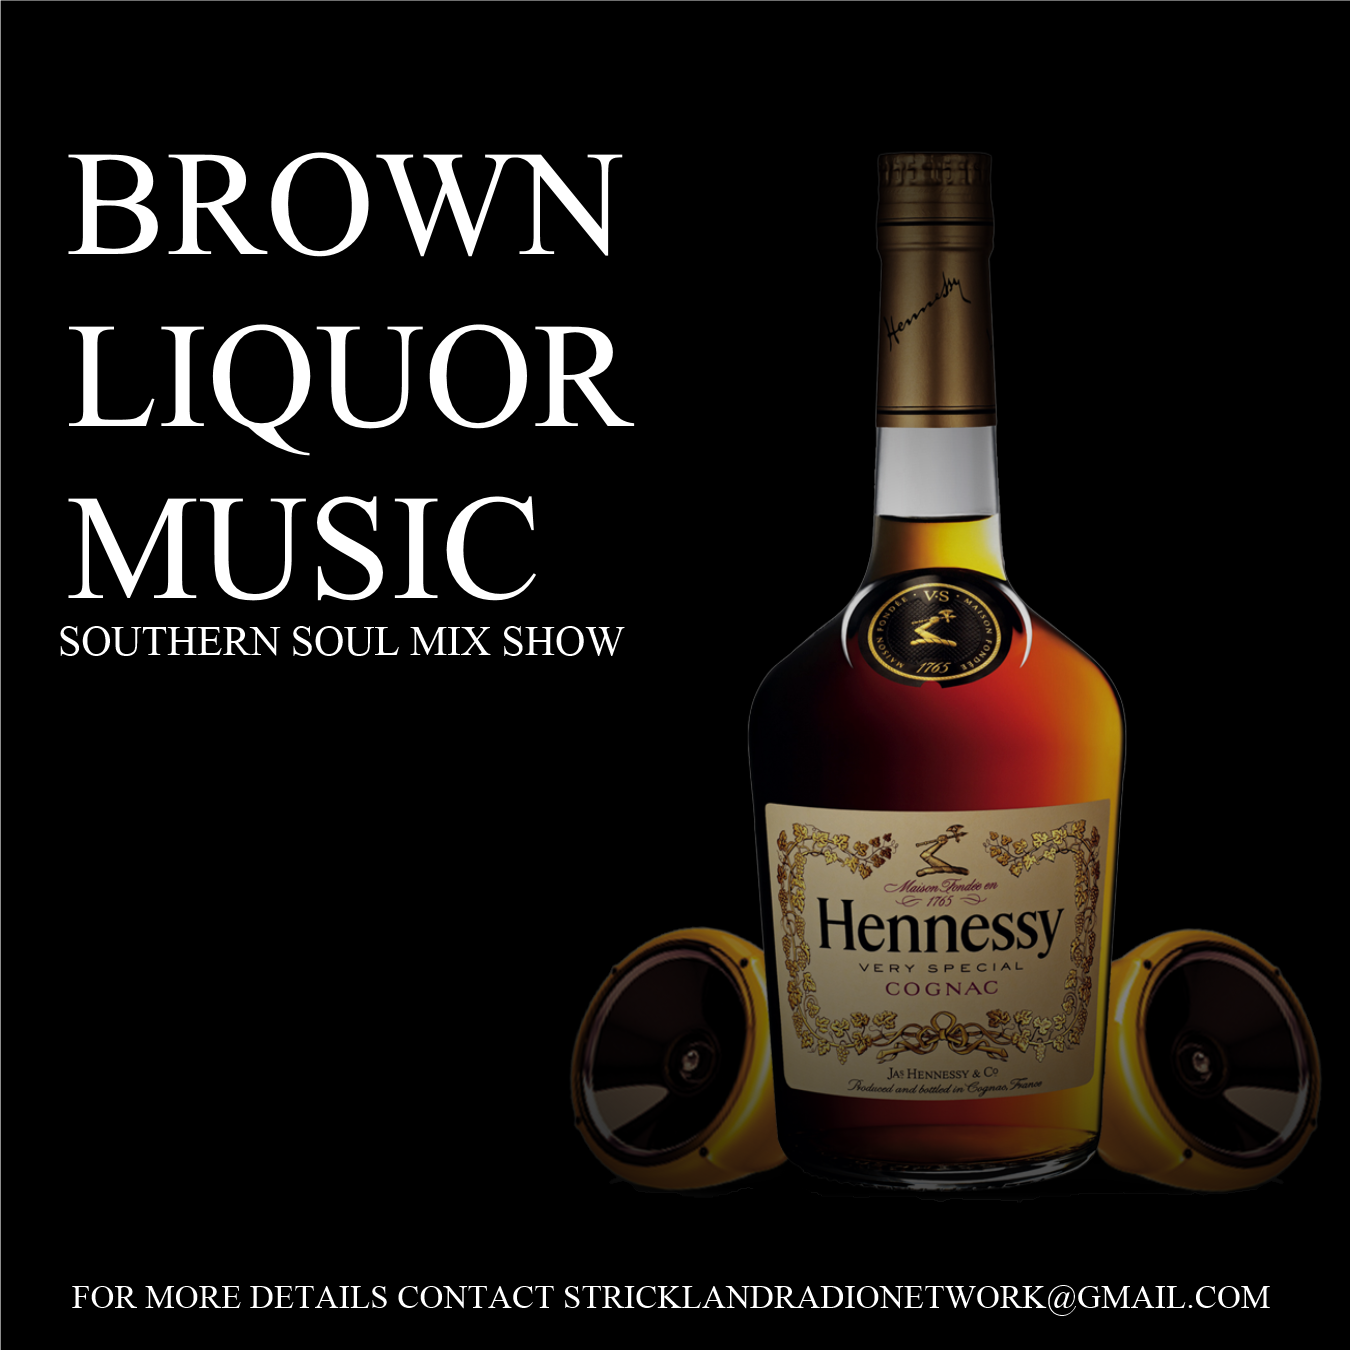 BROWN LIQUOR MUSIC